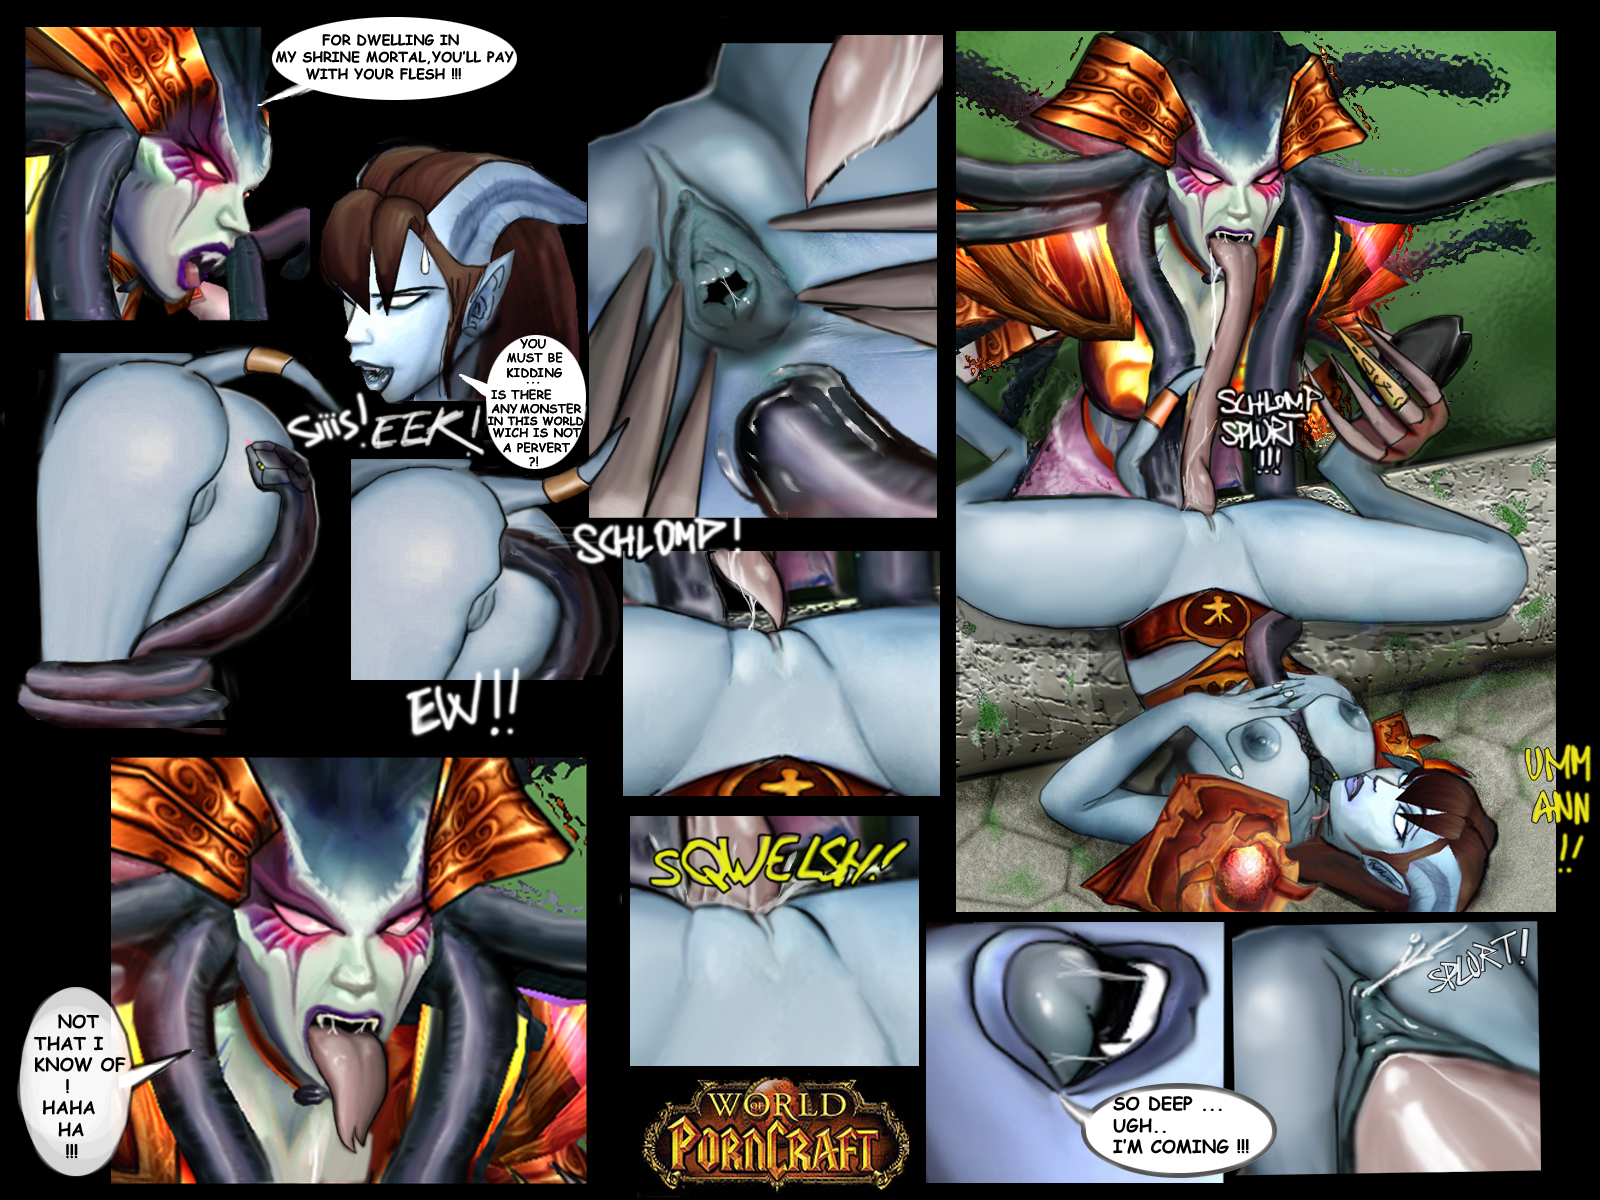 World of warcraft porn warcraft dwarves erotic comics